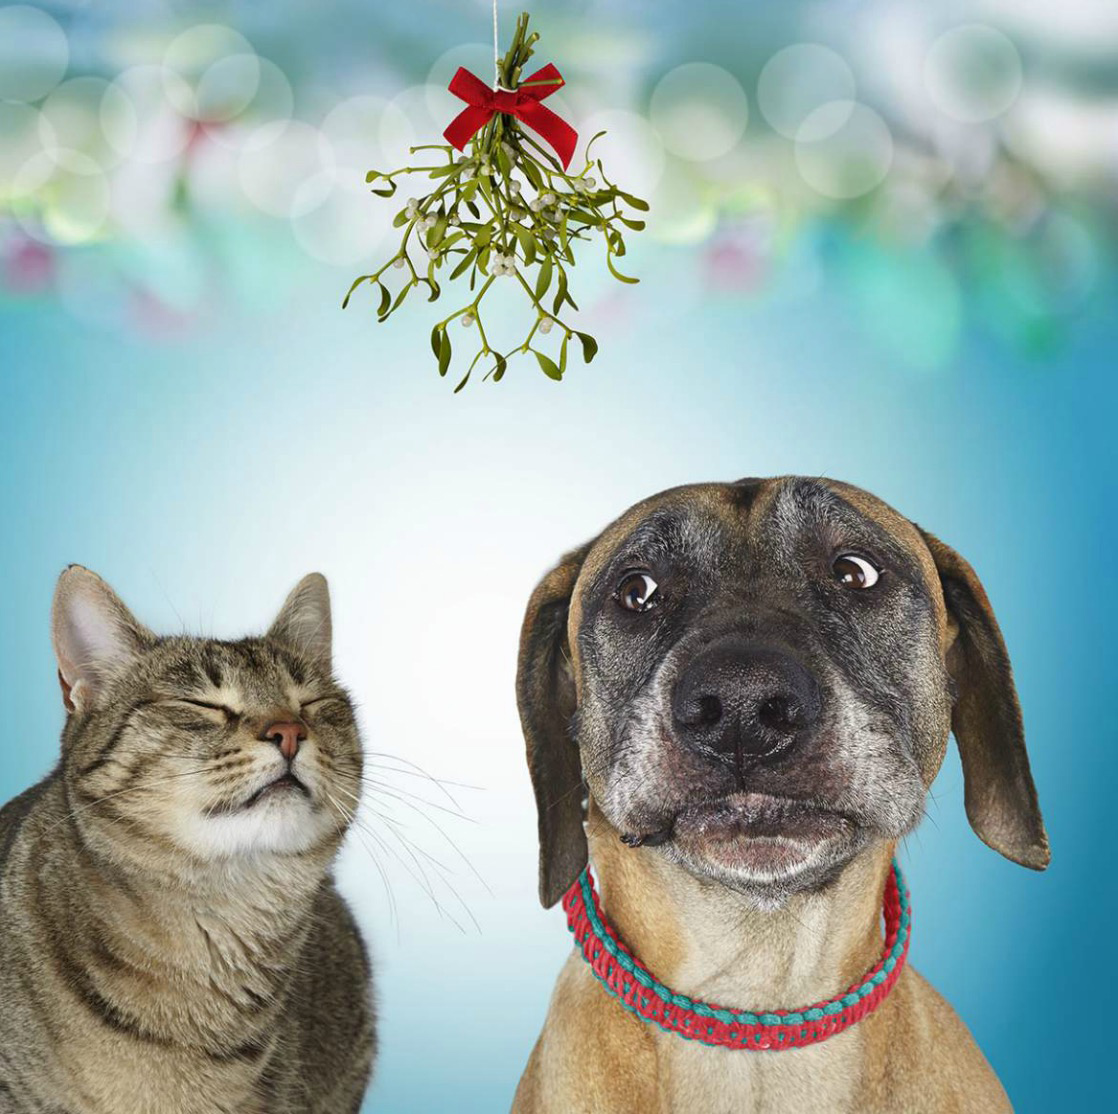 Meet Me Under the Mistletoe Dog and cat under Mistletoe Copyright Gandee Vasan